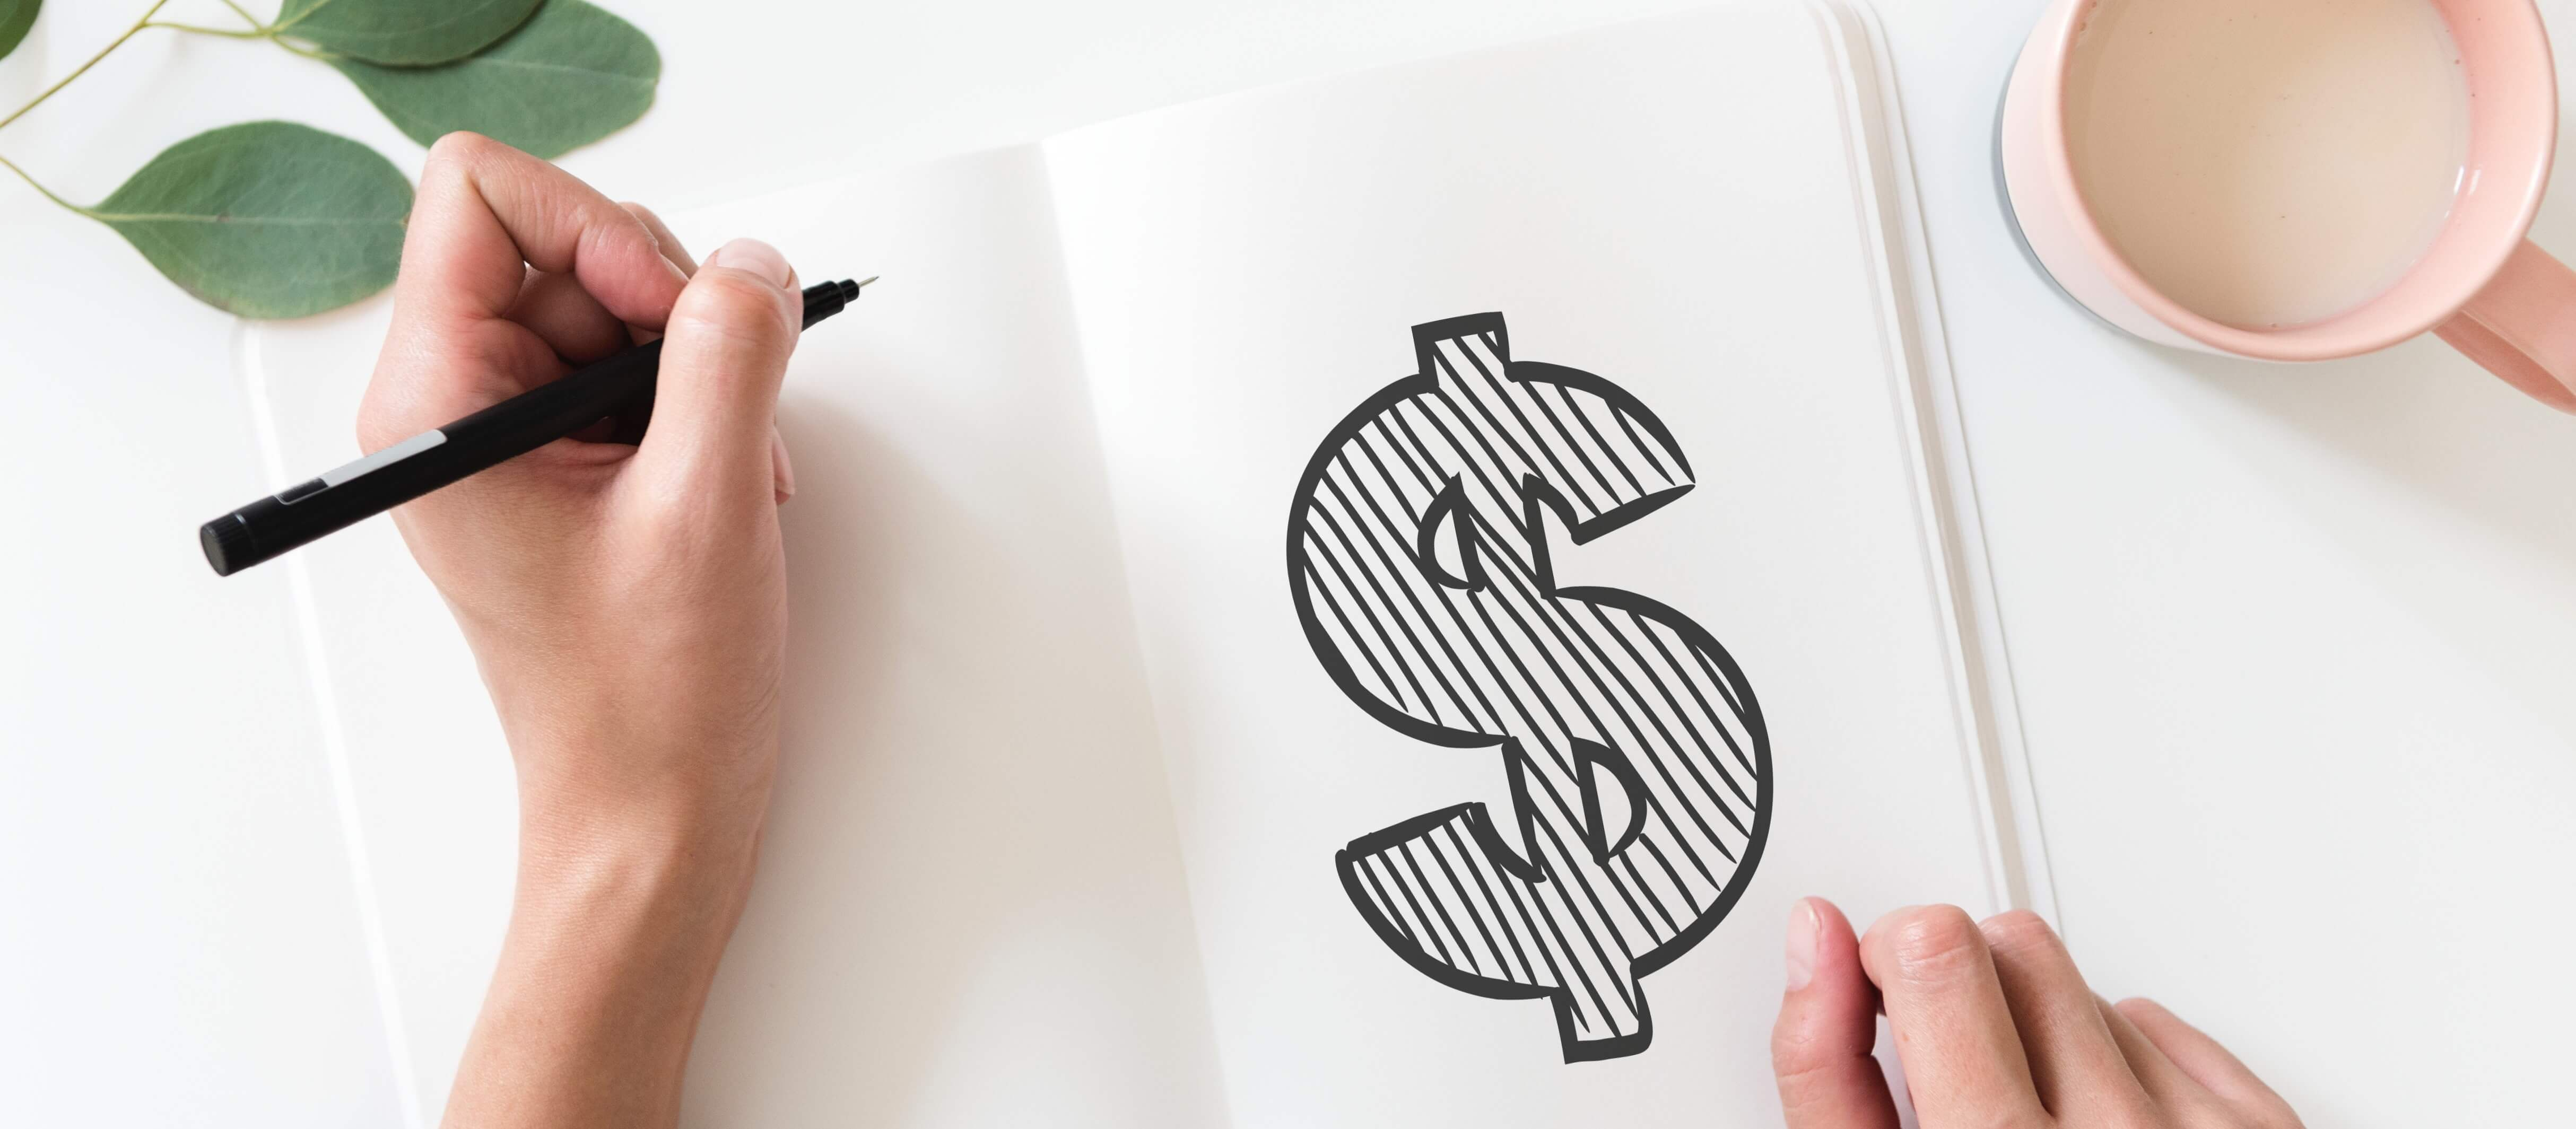 Image description: hands are viewed from above, on a notebook, a large dollar sign has been drawn in black marker.